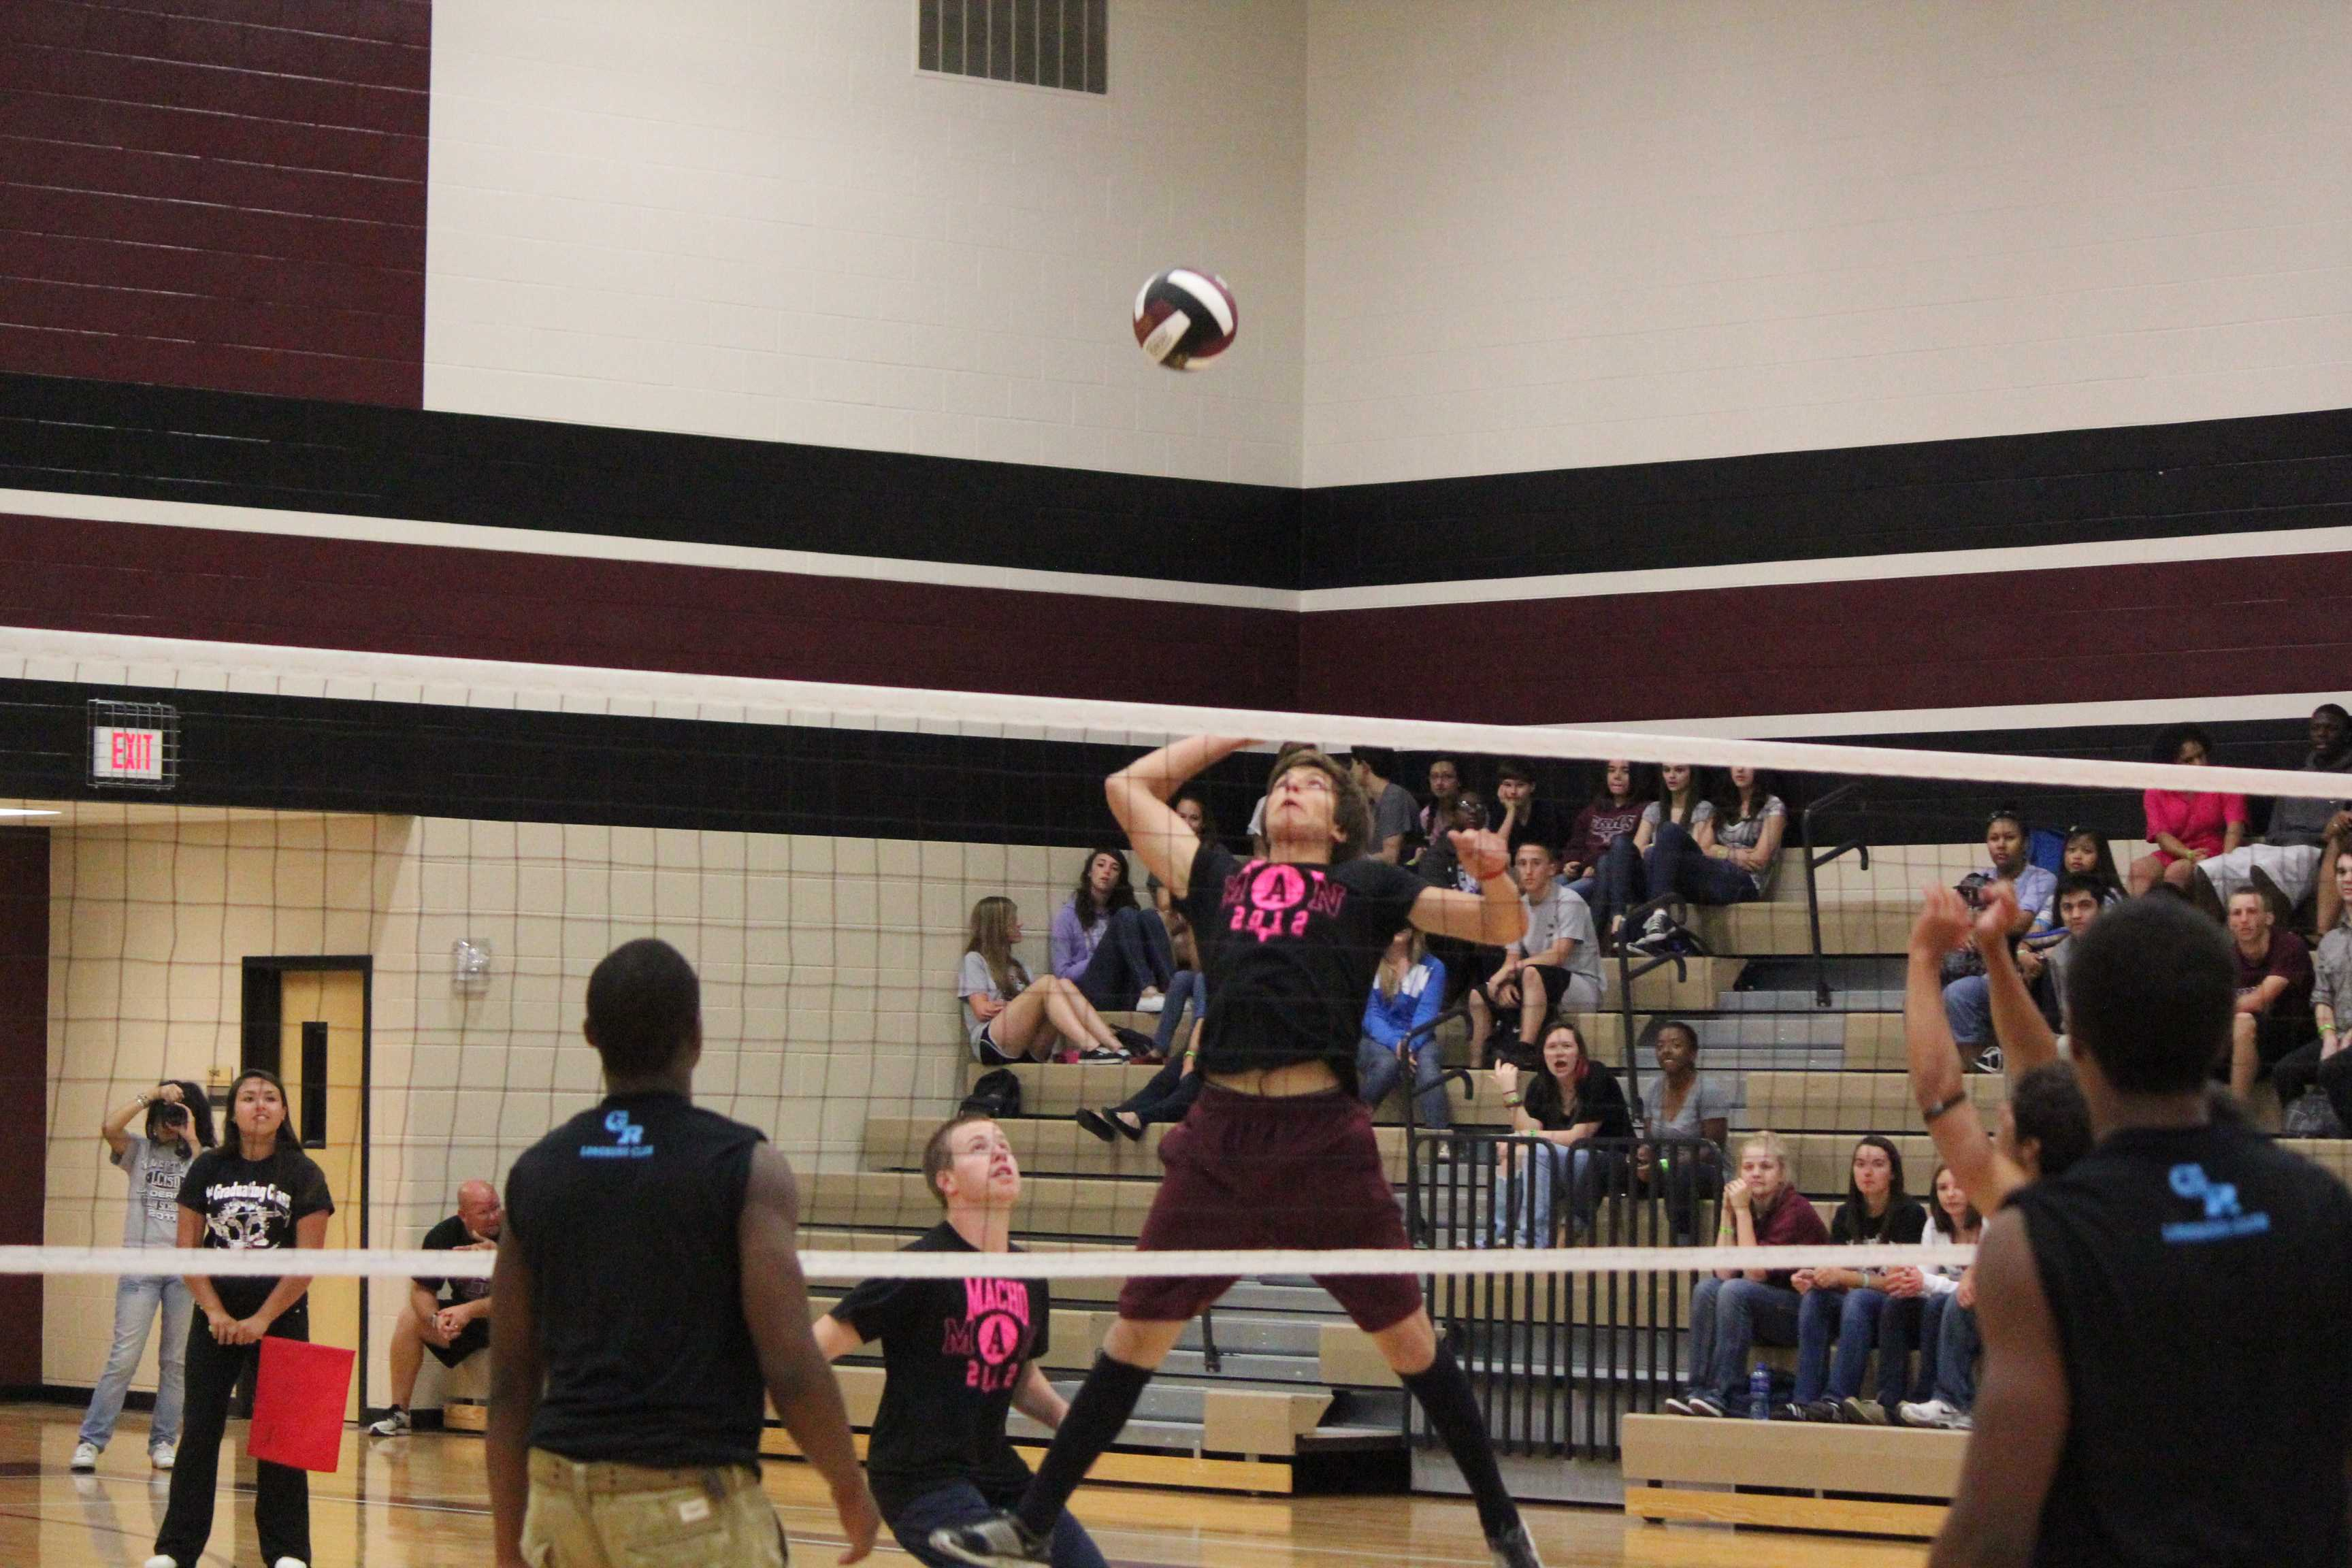 Junior Philip Garza goes for the kill at the Pro-Grad sponsored Macho Man volleyball game.